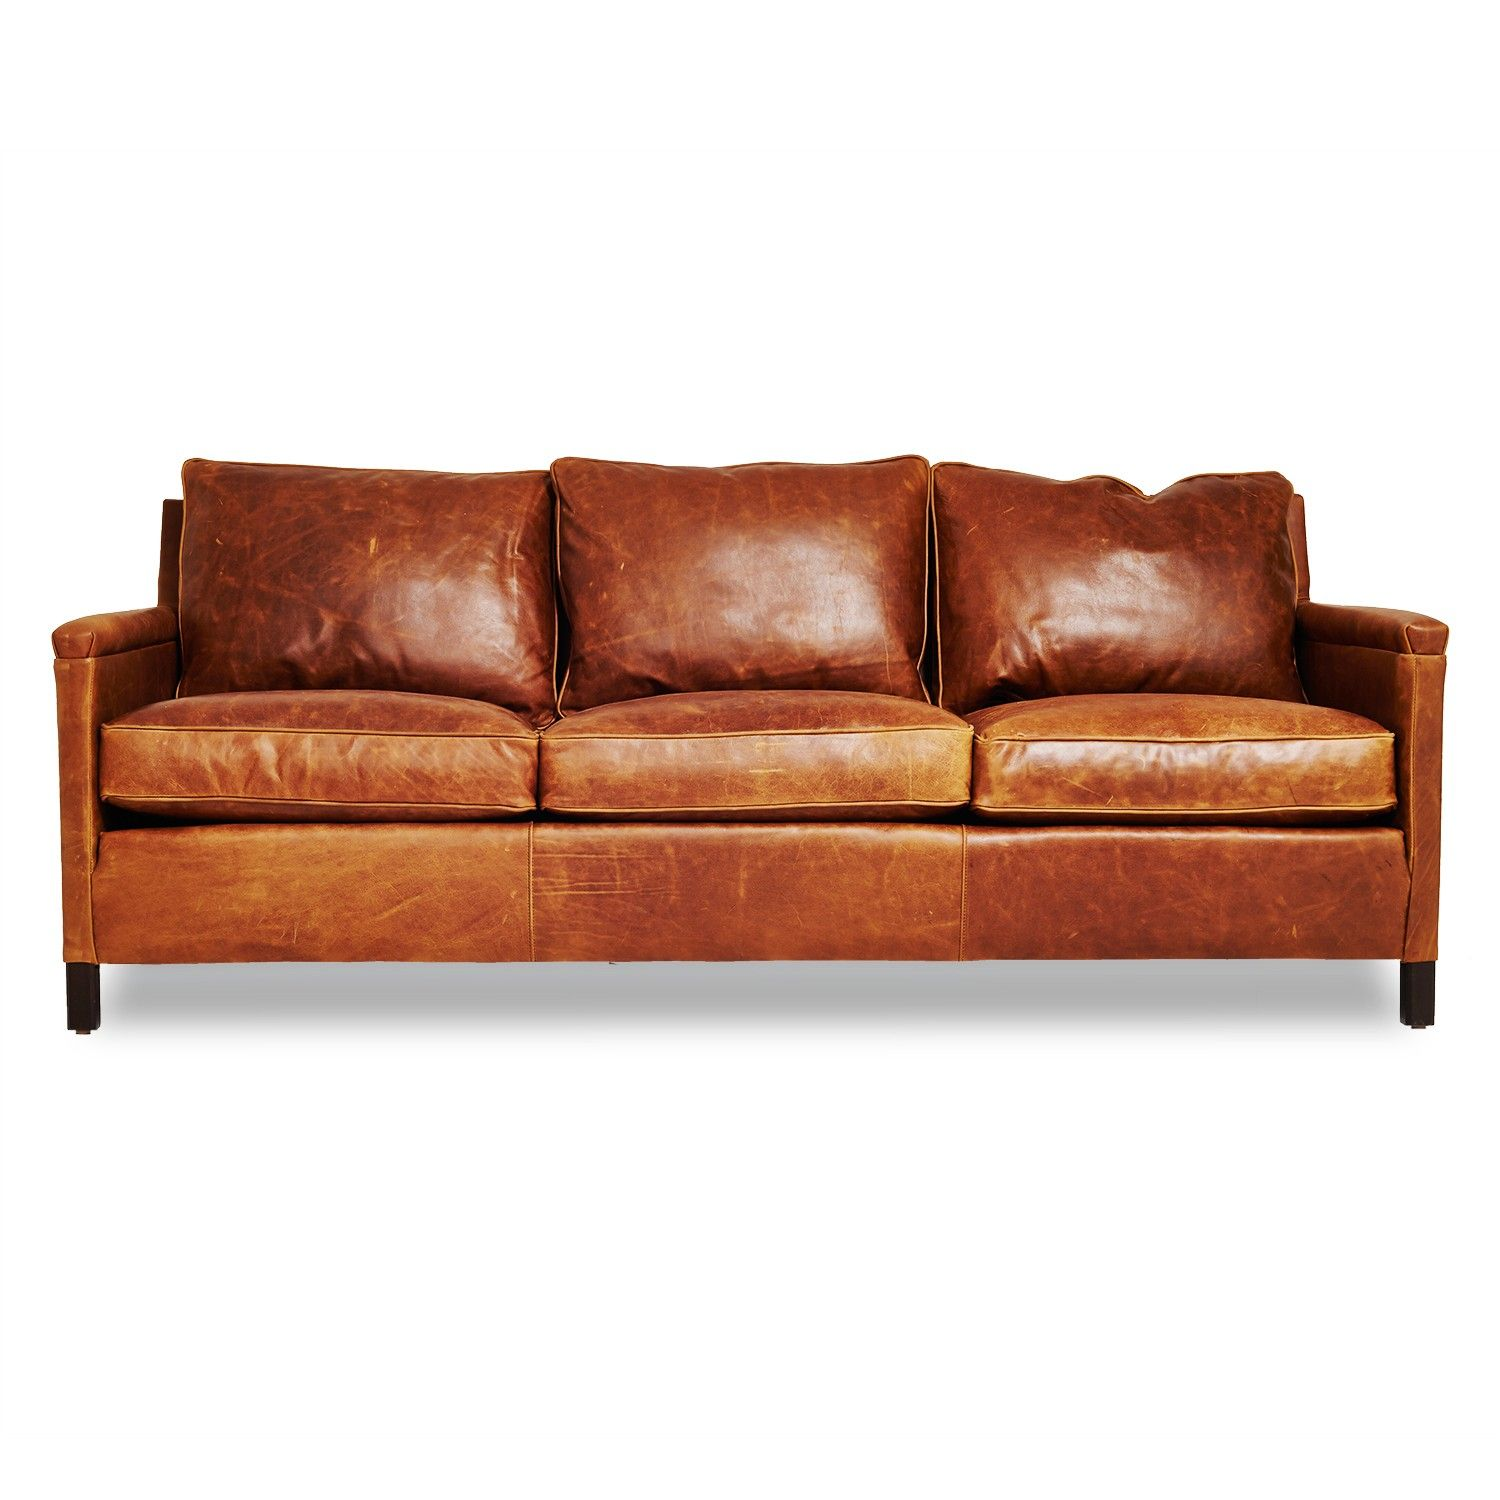 The Heston gives an urban edge to the classic leather sofa